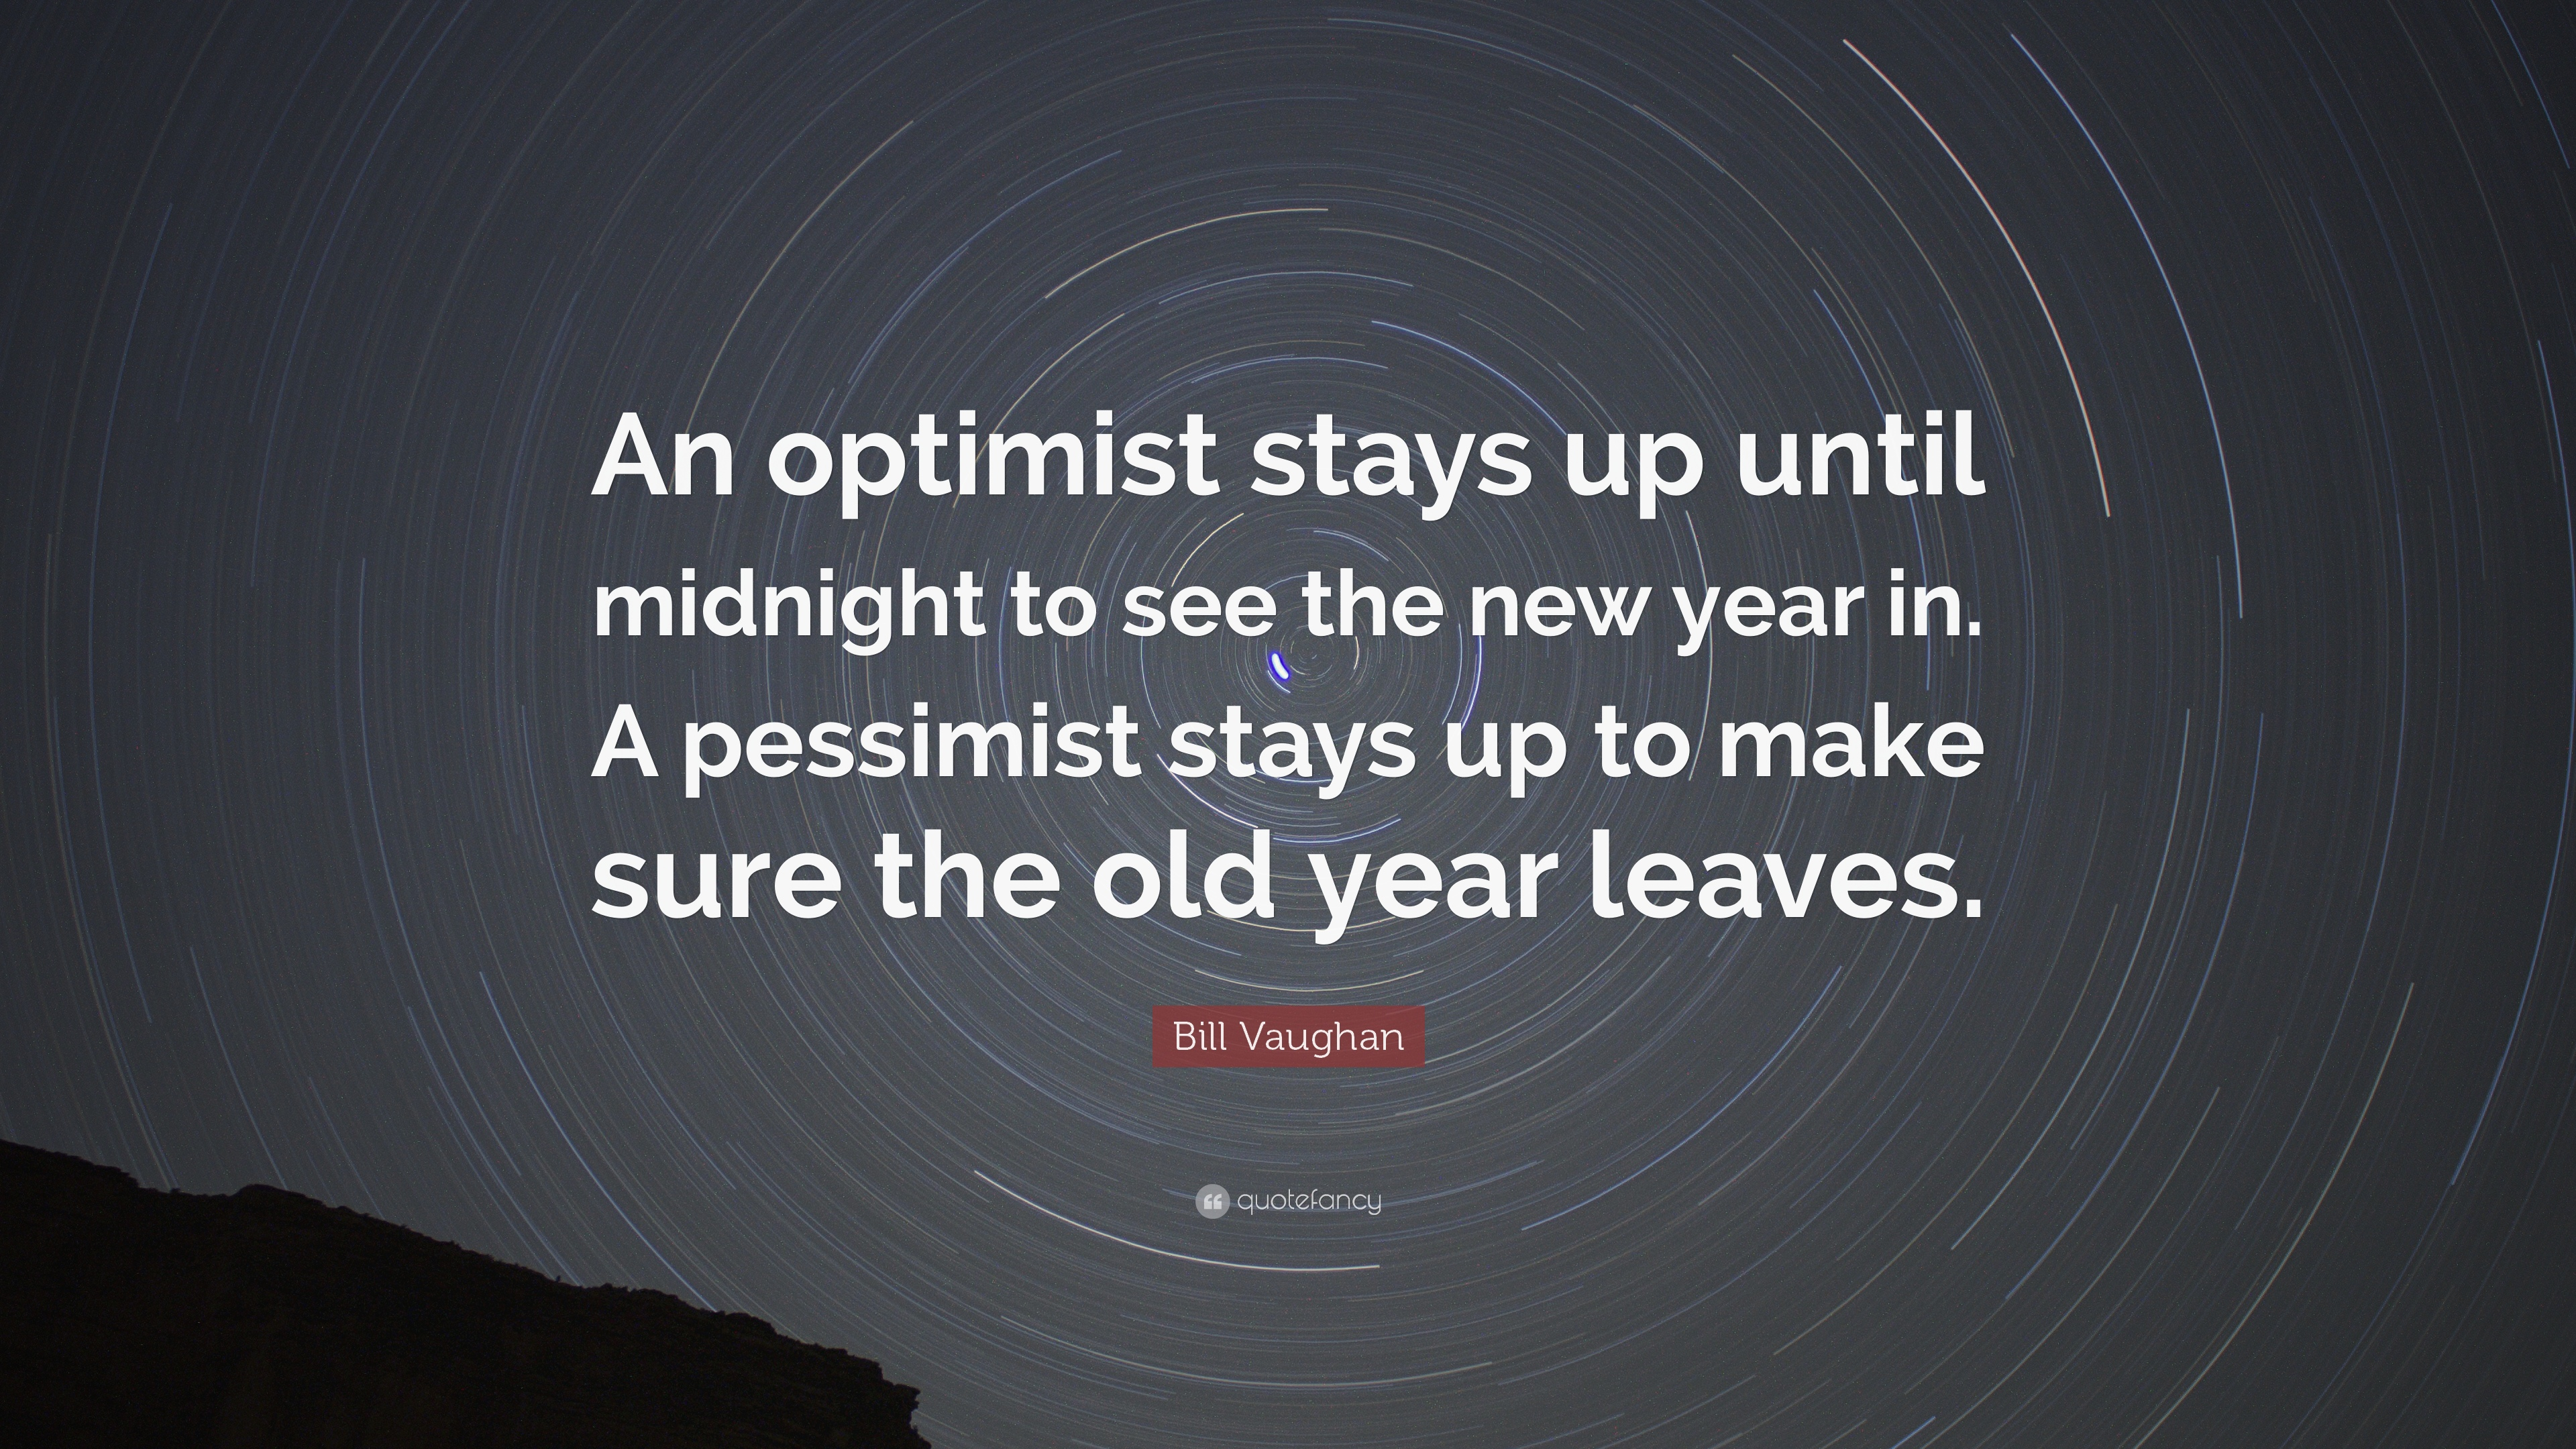 Happy New Year, blog post, aspasia s. bissas, new years, new year 2021, 2020, 2021, quote, quotes, funny, funny quote, funny quotes, bill vaughan, an optimist stays up until midnight to see the new year in, a pessimist stays up to make sure the old year leaves, aspasiasbissas.com